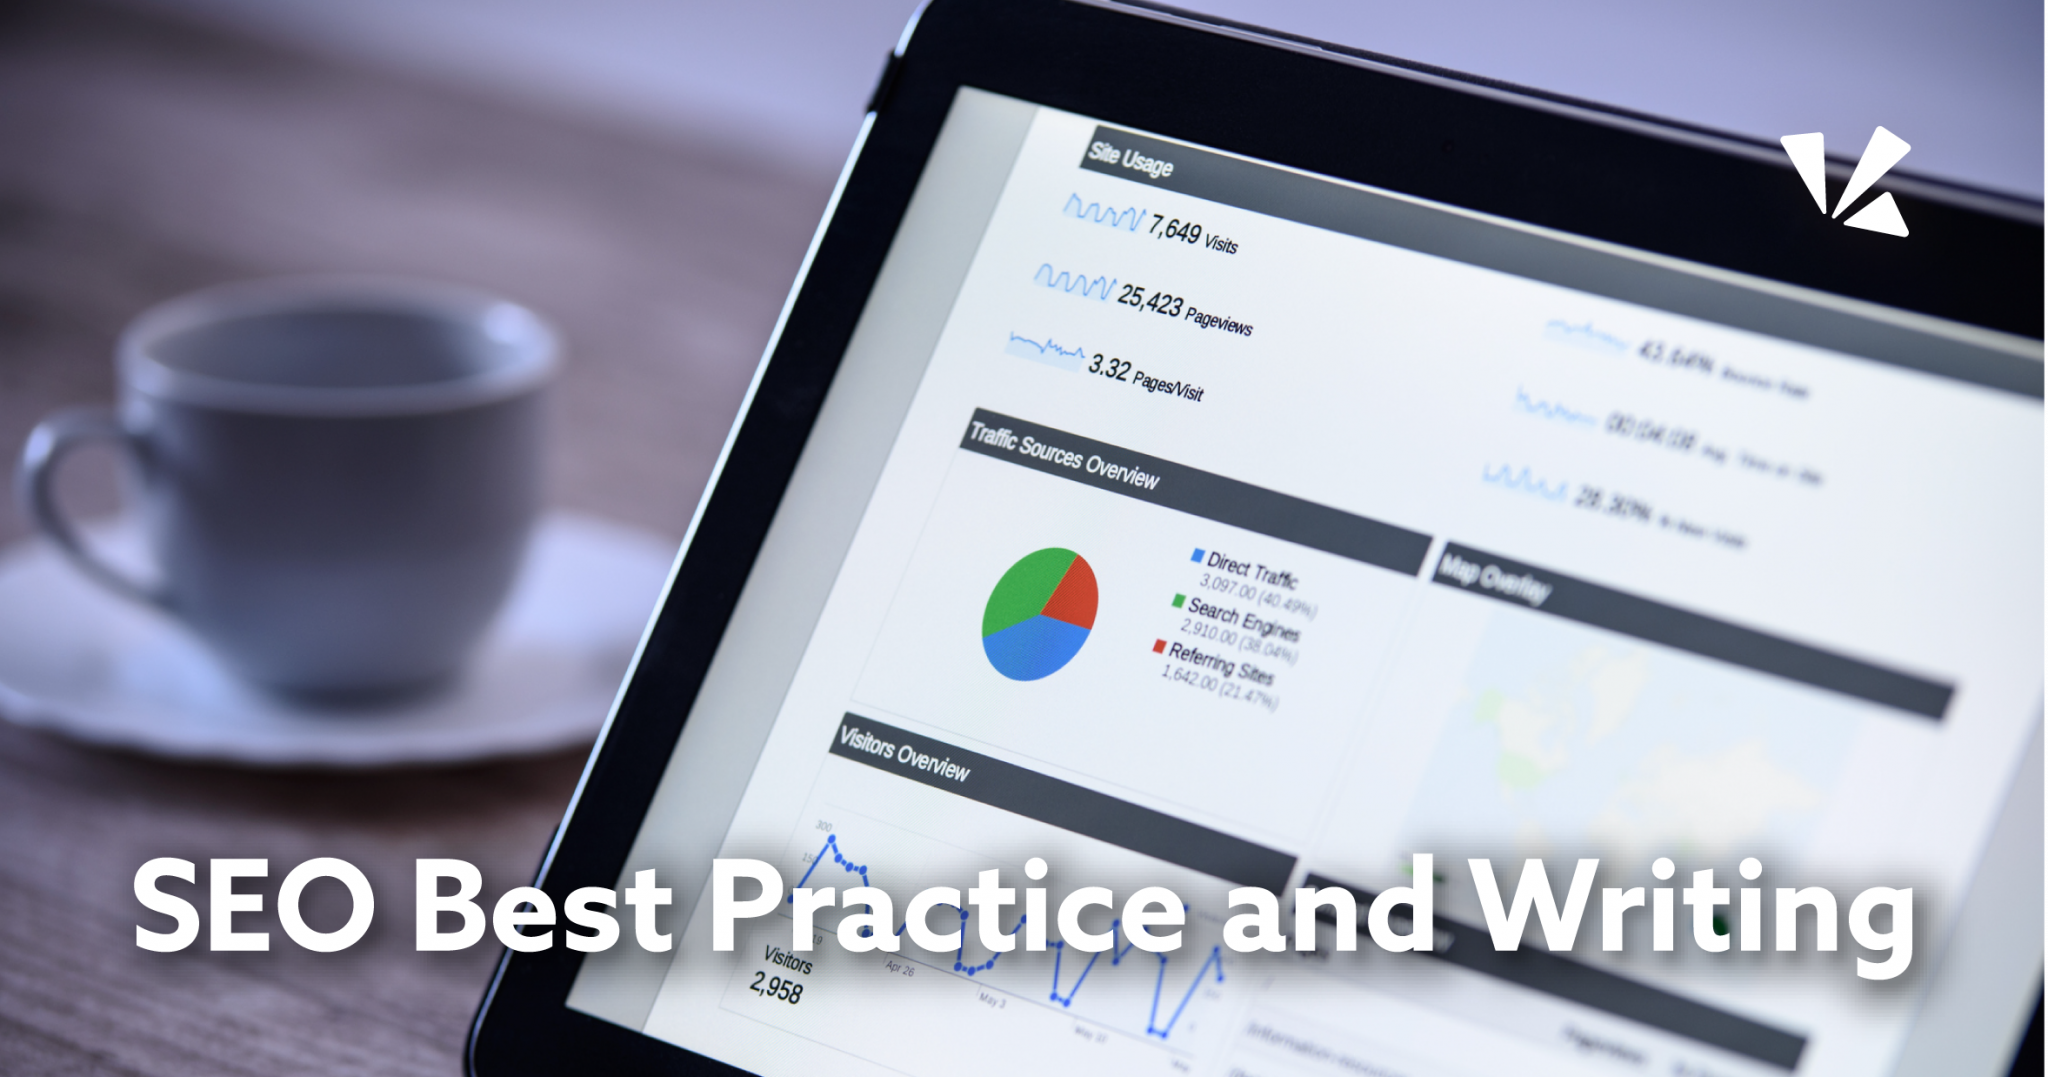 SEO best practice and writing blog header